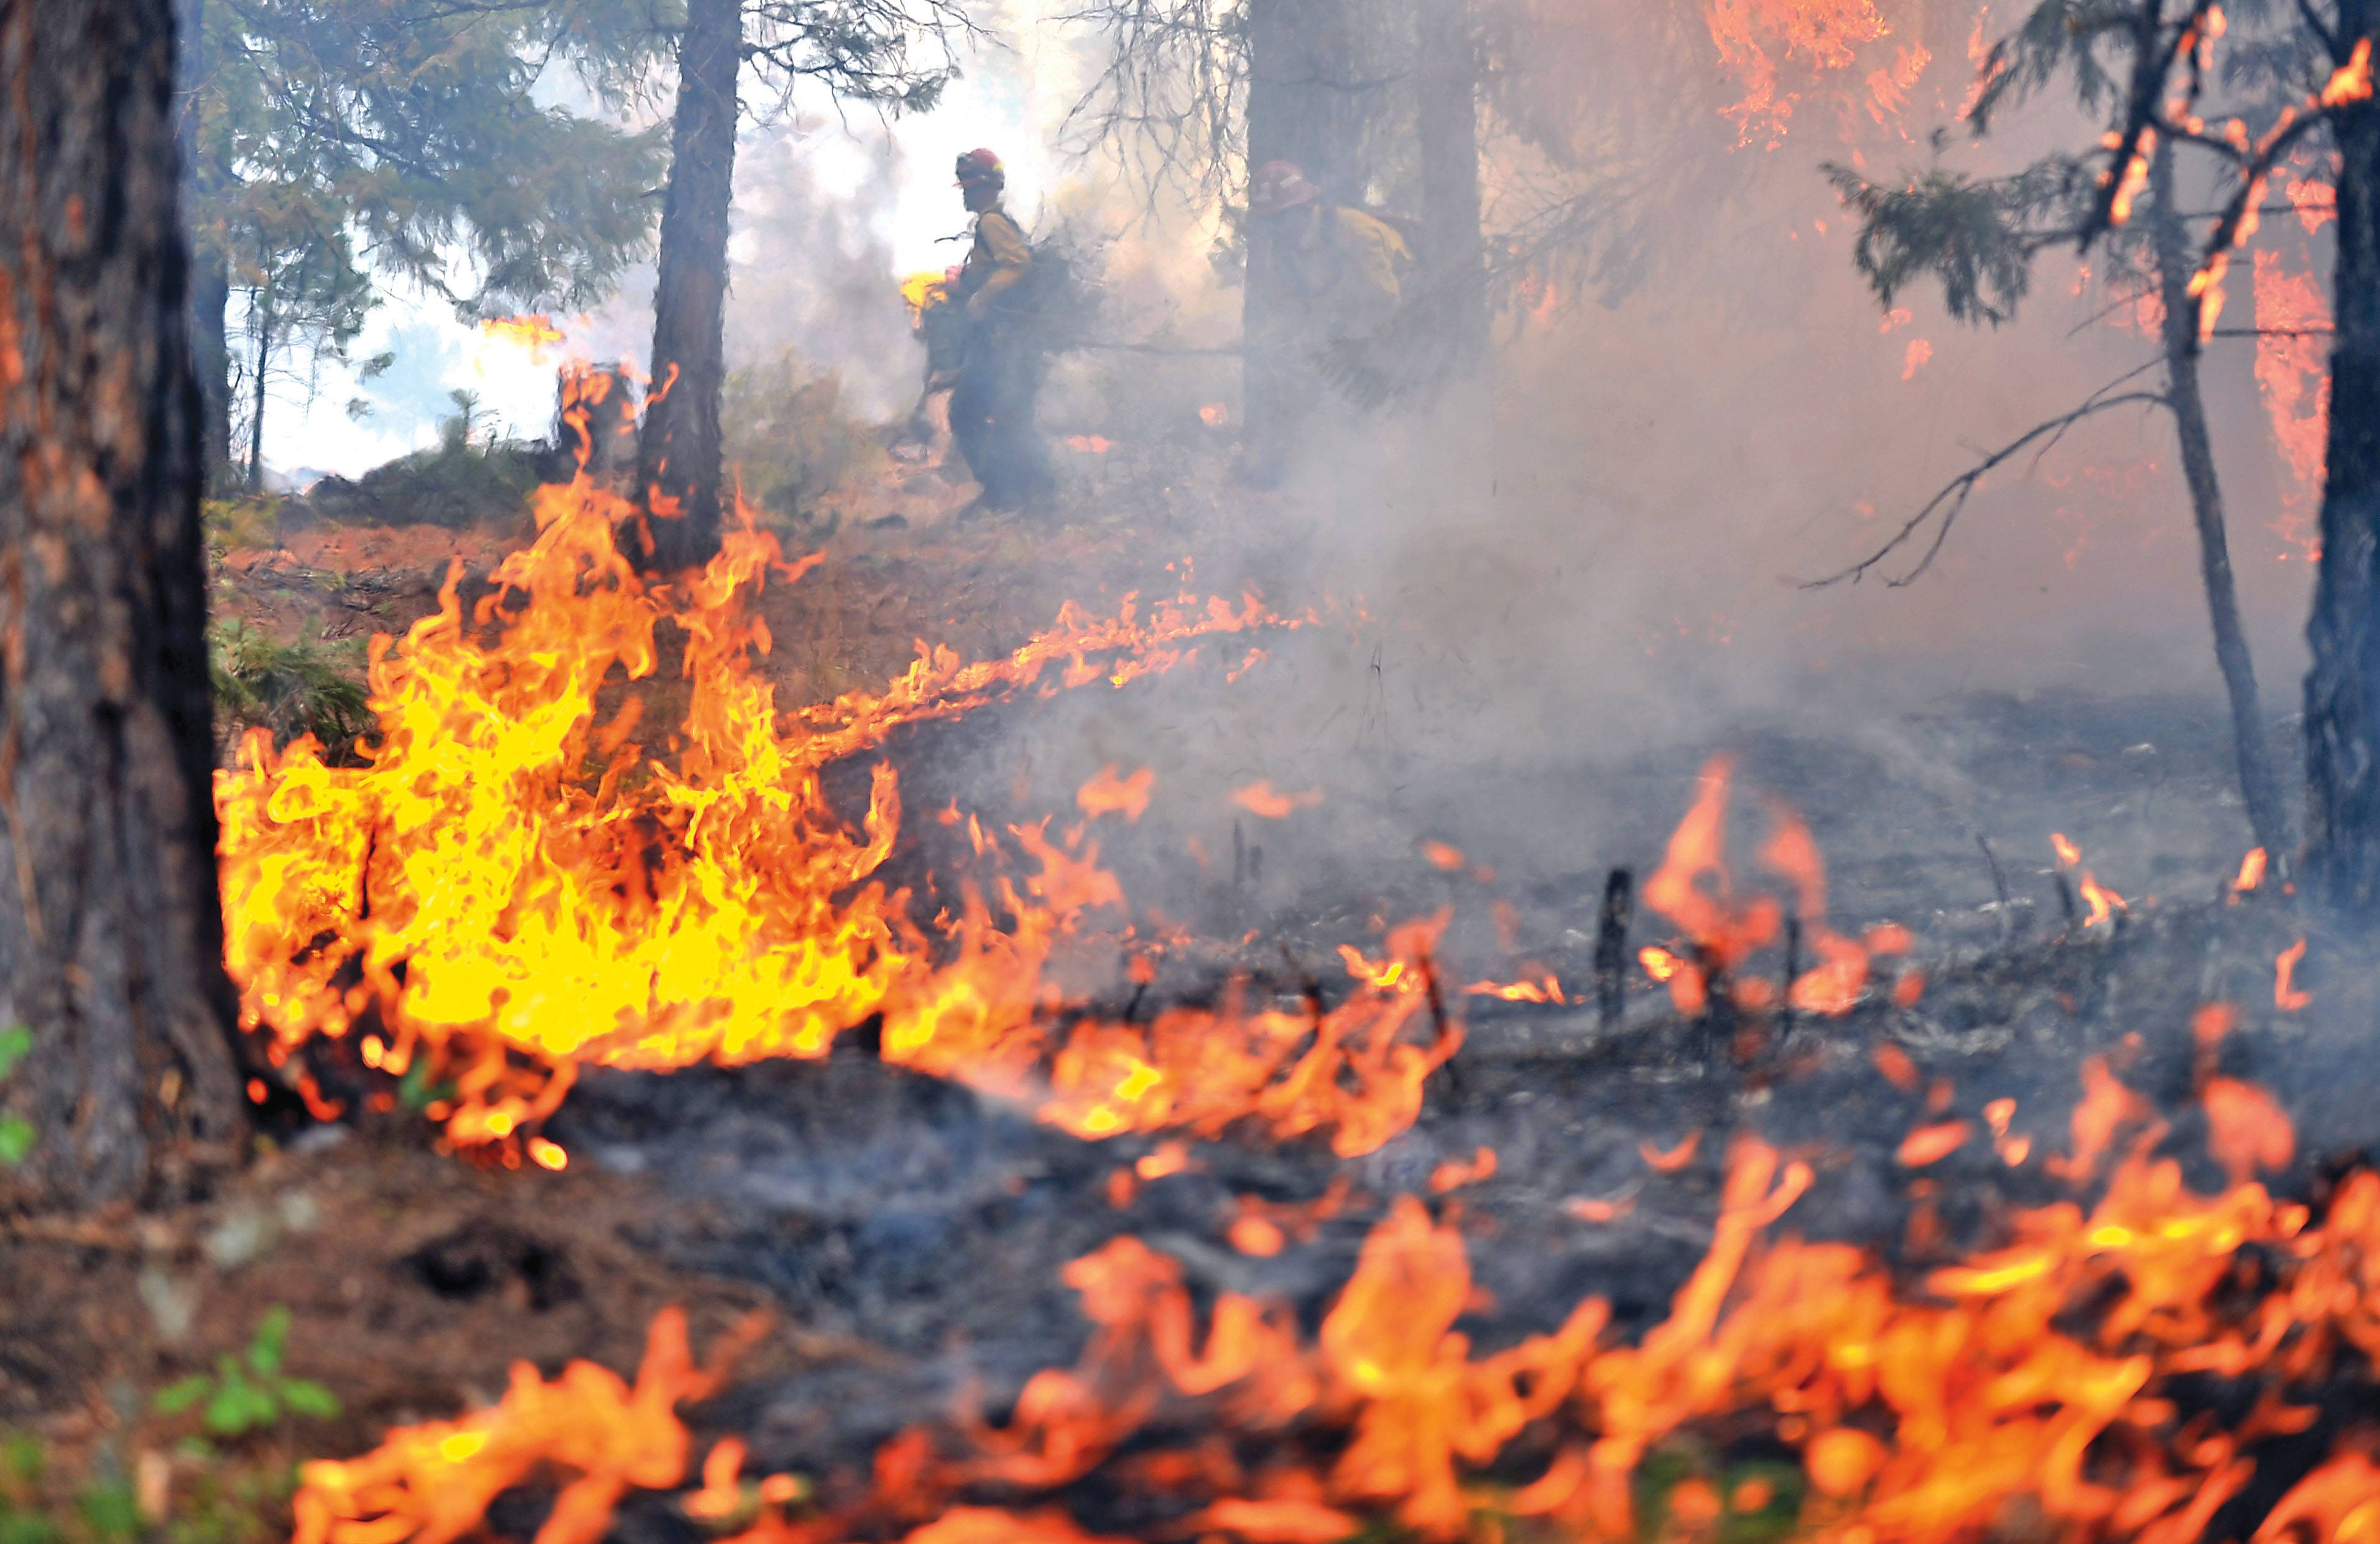 A 20-person handcrew from JC Orozco Reforestation conducts a burn out operation on the western flank of the Oregon Gulch Fire burning south of Highway 66 in the area of the Soda Mountain Wilderness in Oregon. Officials said the fire was started by lightning on Thursday.